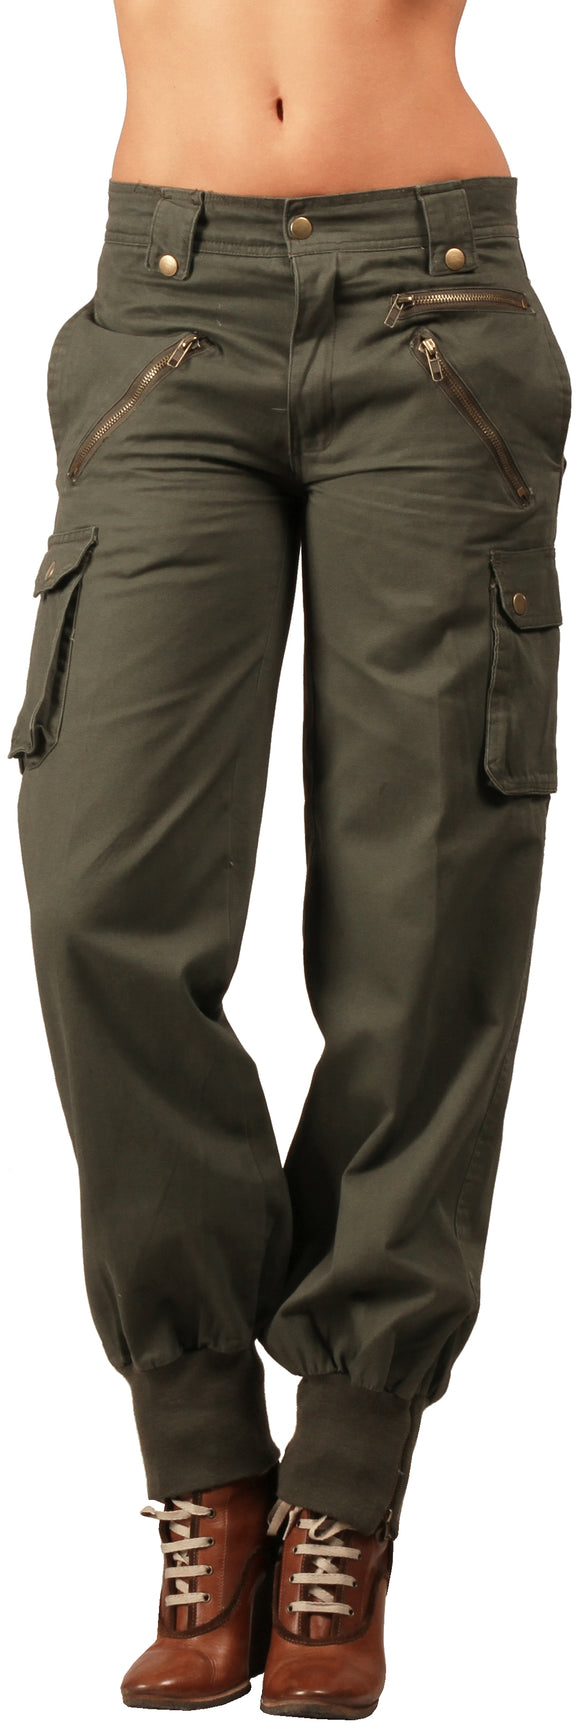 Dead Threads - Women's Khaki Five Pocket Pants